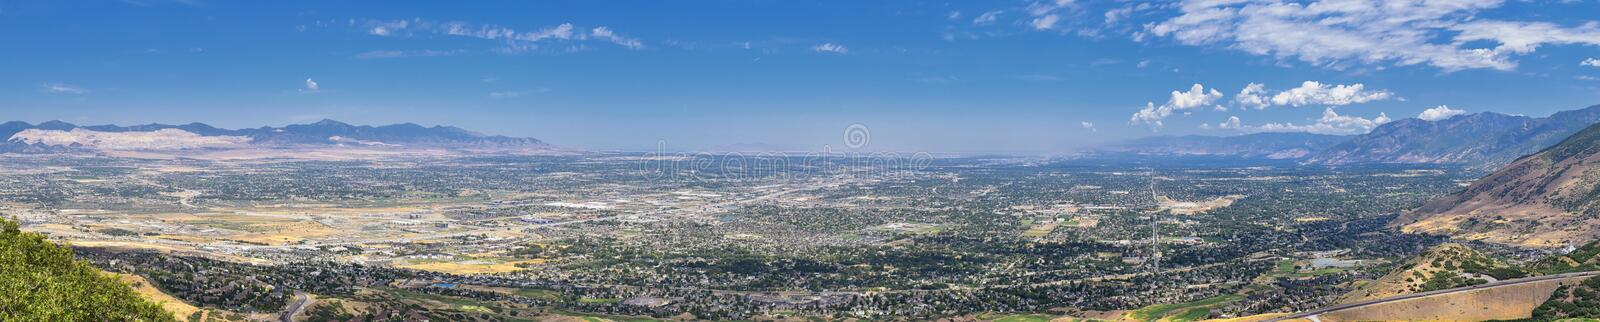 Panoramic Landscape view of Wasatch Front Rocky and Oquirrh Mountains, Rio Tinto Bingham Copper Mine, Great Salt Lake Valley in su stock image